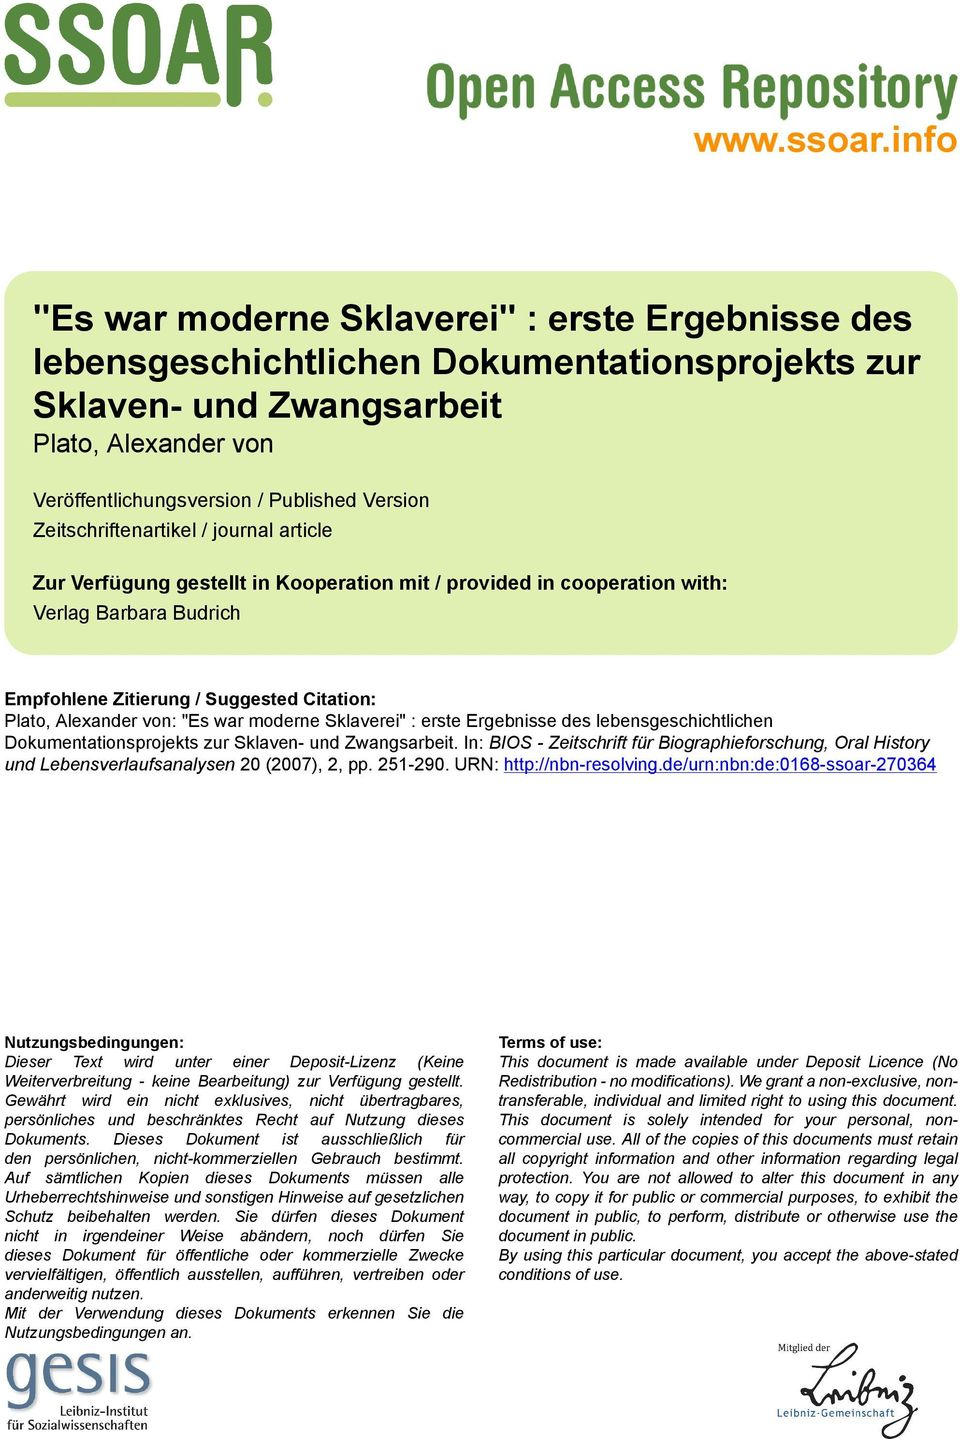 Zeitschriftenartikel / journal article Zur Verfügung gestellt in Kooperation mit / provided in cooperation with: Verlag Barbara Budrich Empfohlene Zitierung / Suggested Citation: Plato, Alexander